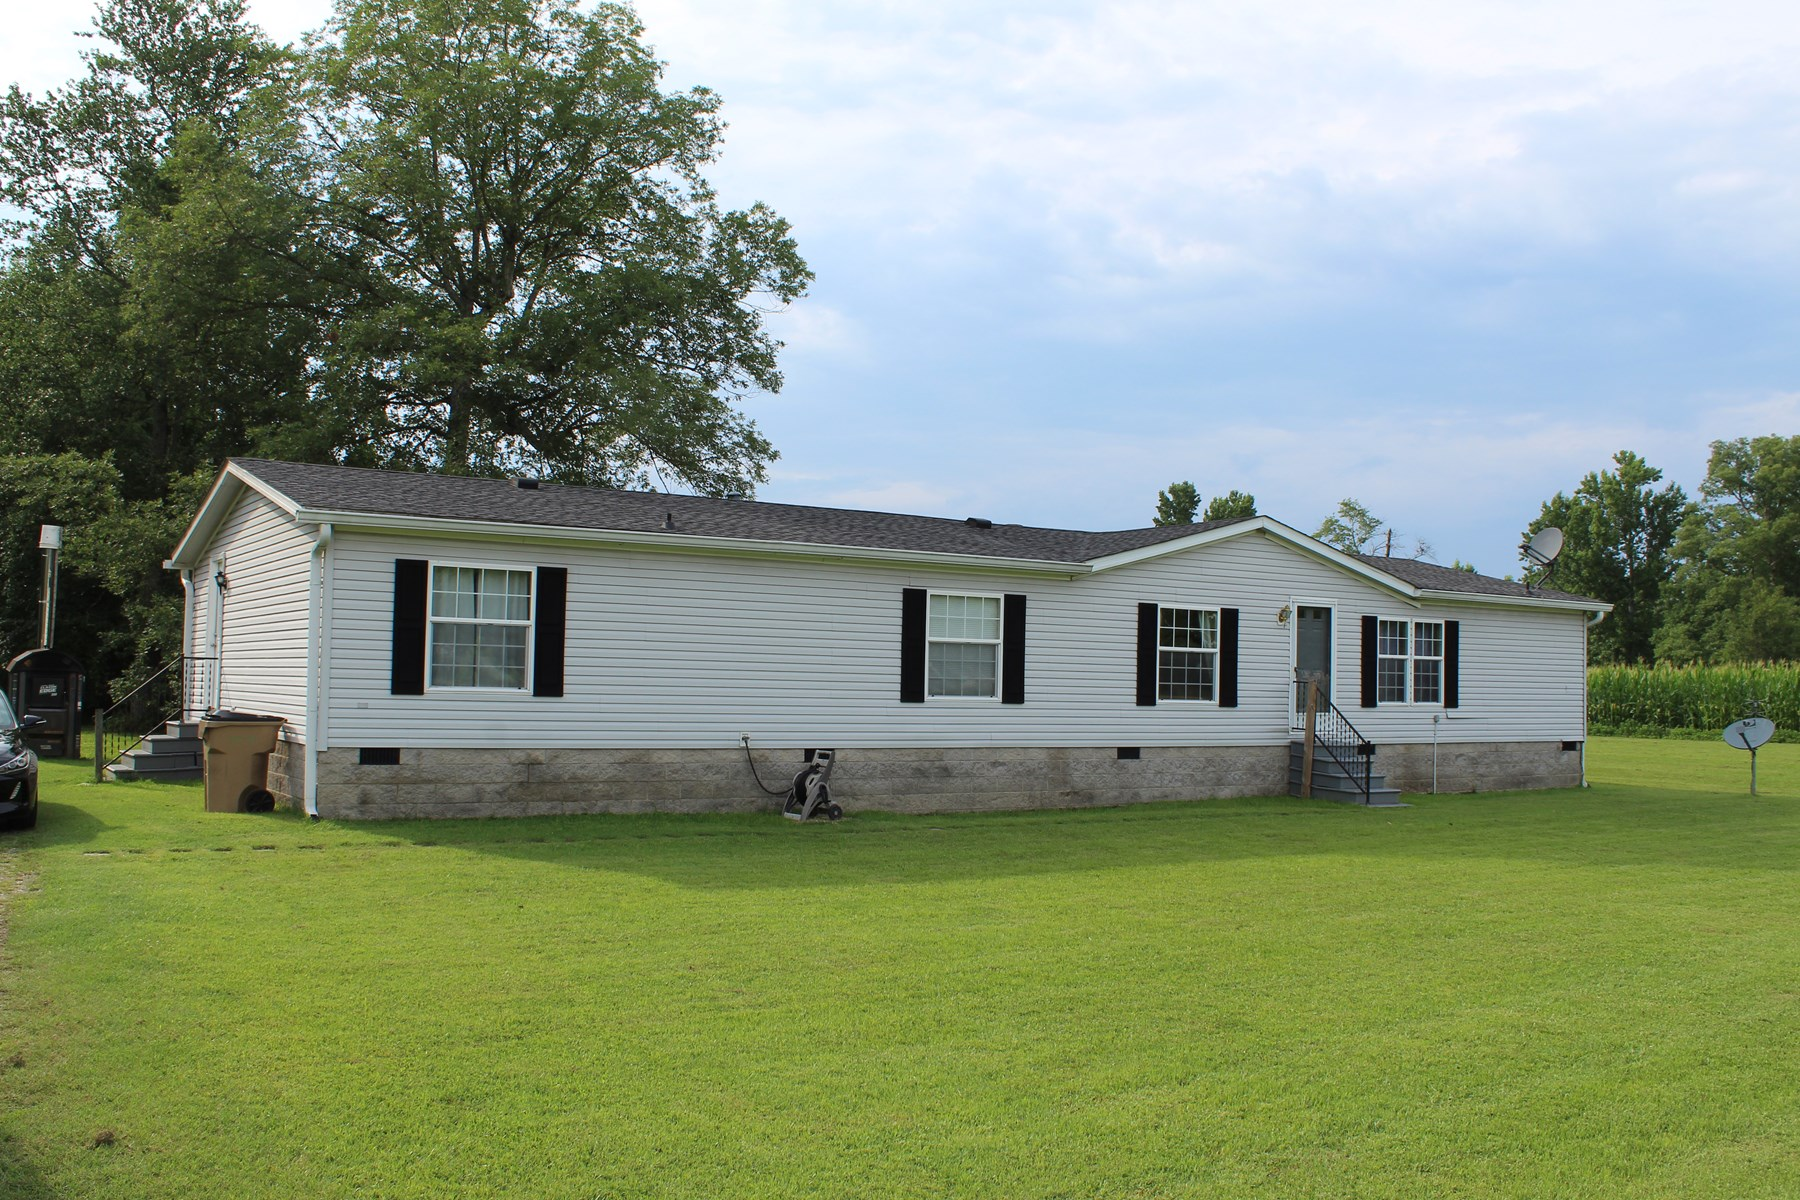 Warren County Home & 13 Acres For Sale @ Auction in 2 Tracts